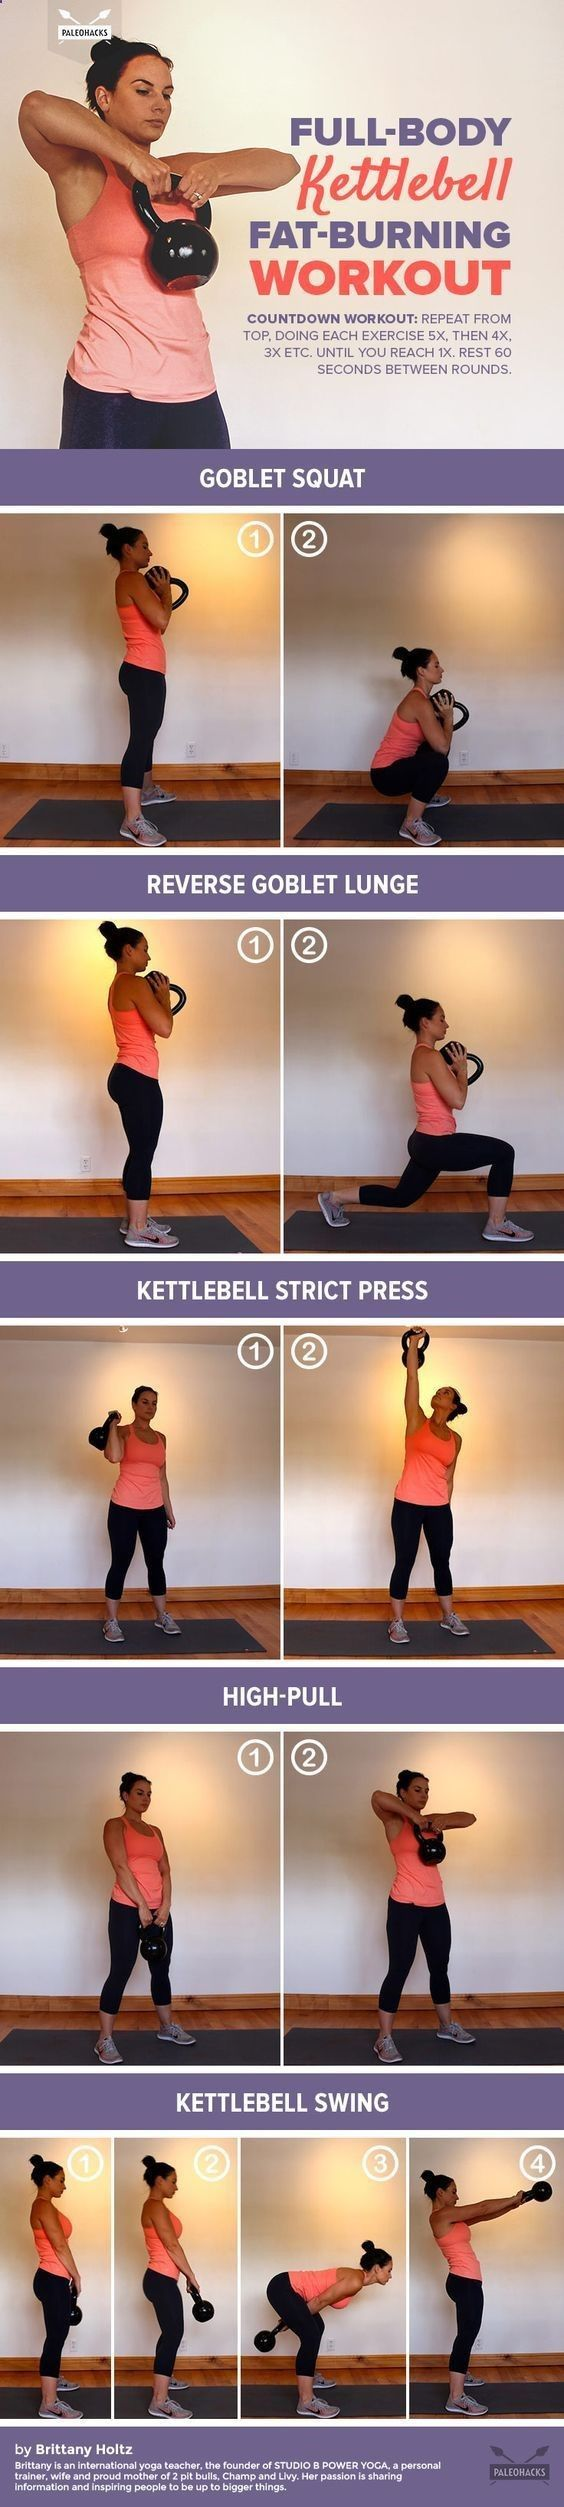 full body kettlebell fat burning workout | Posted By: AdvancedWeightLossTips.com